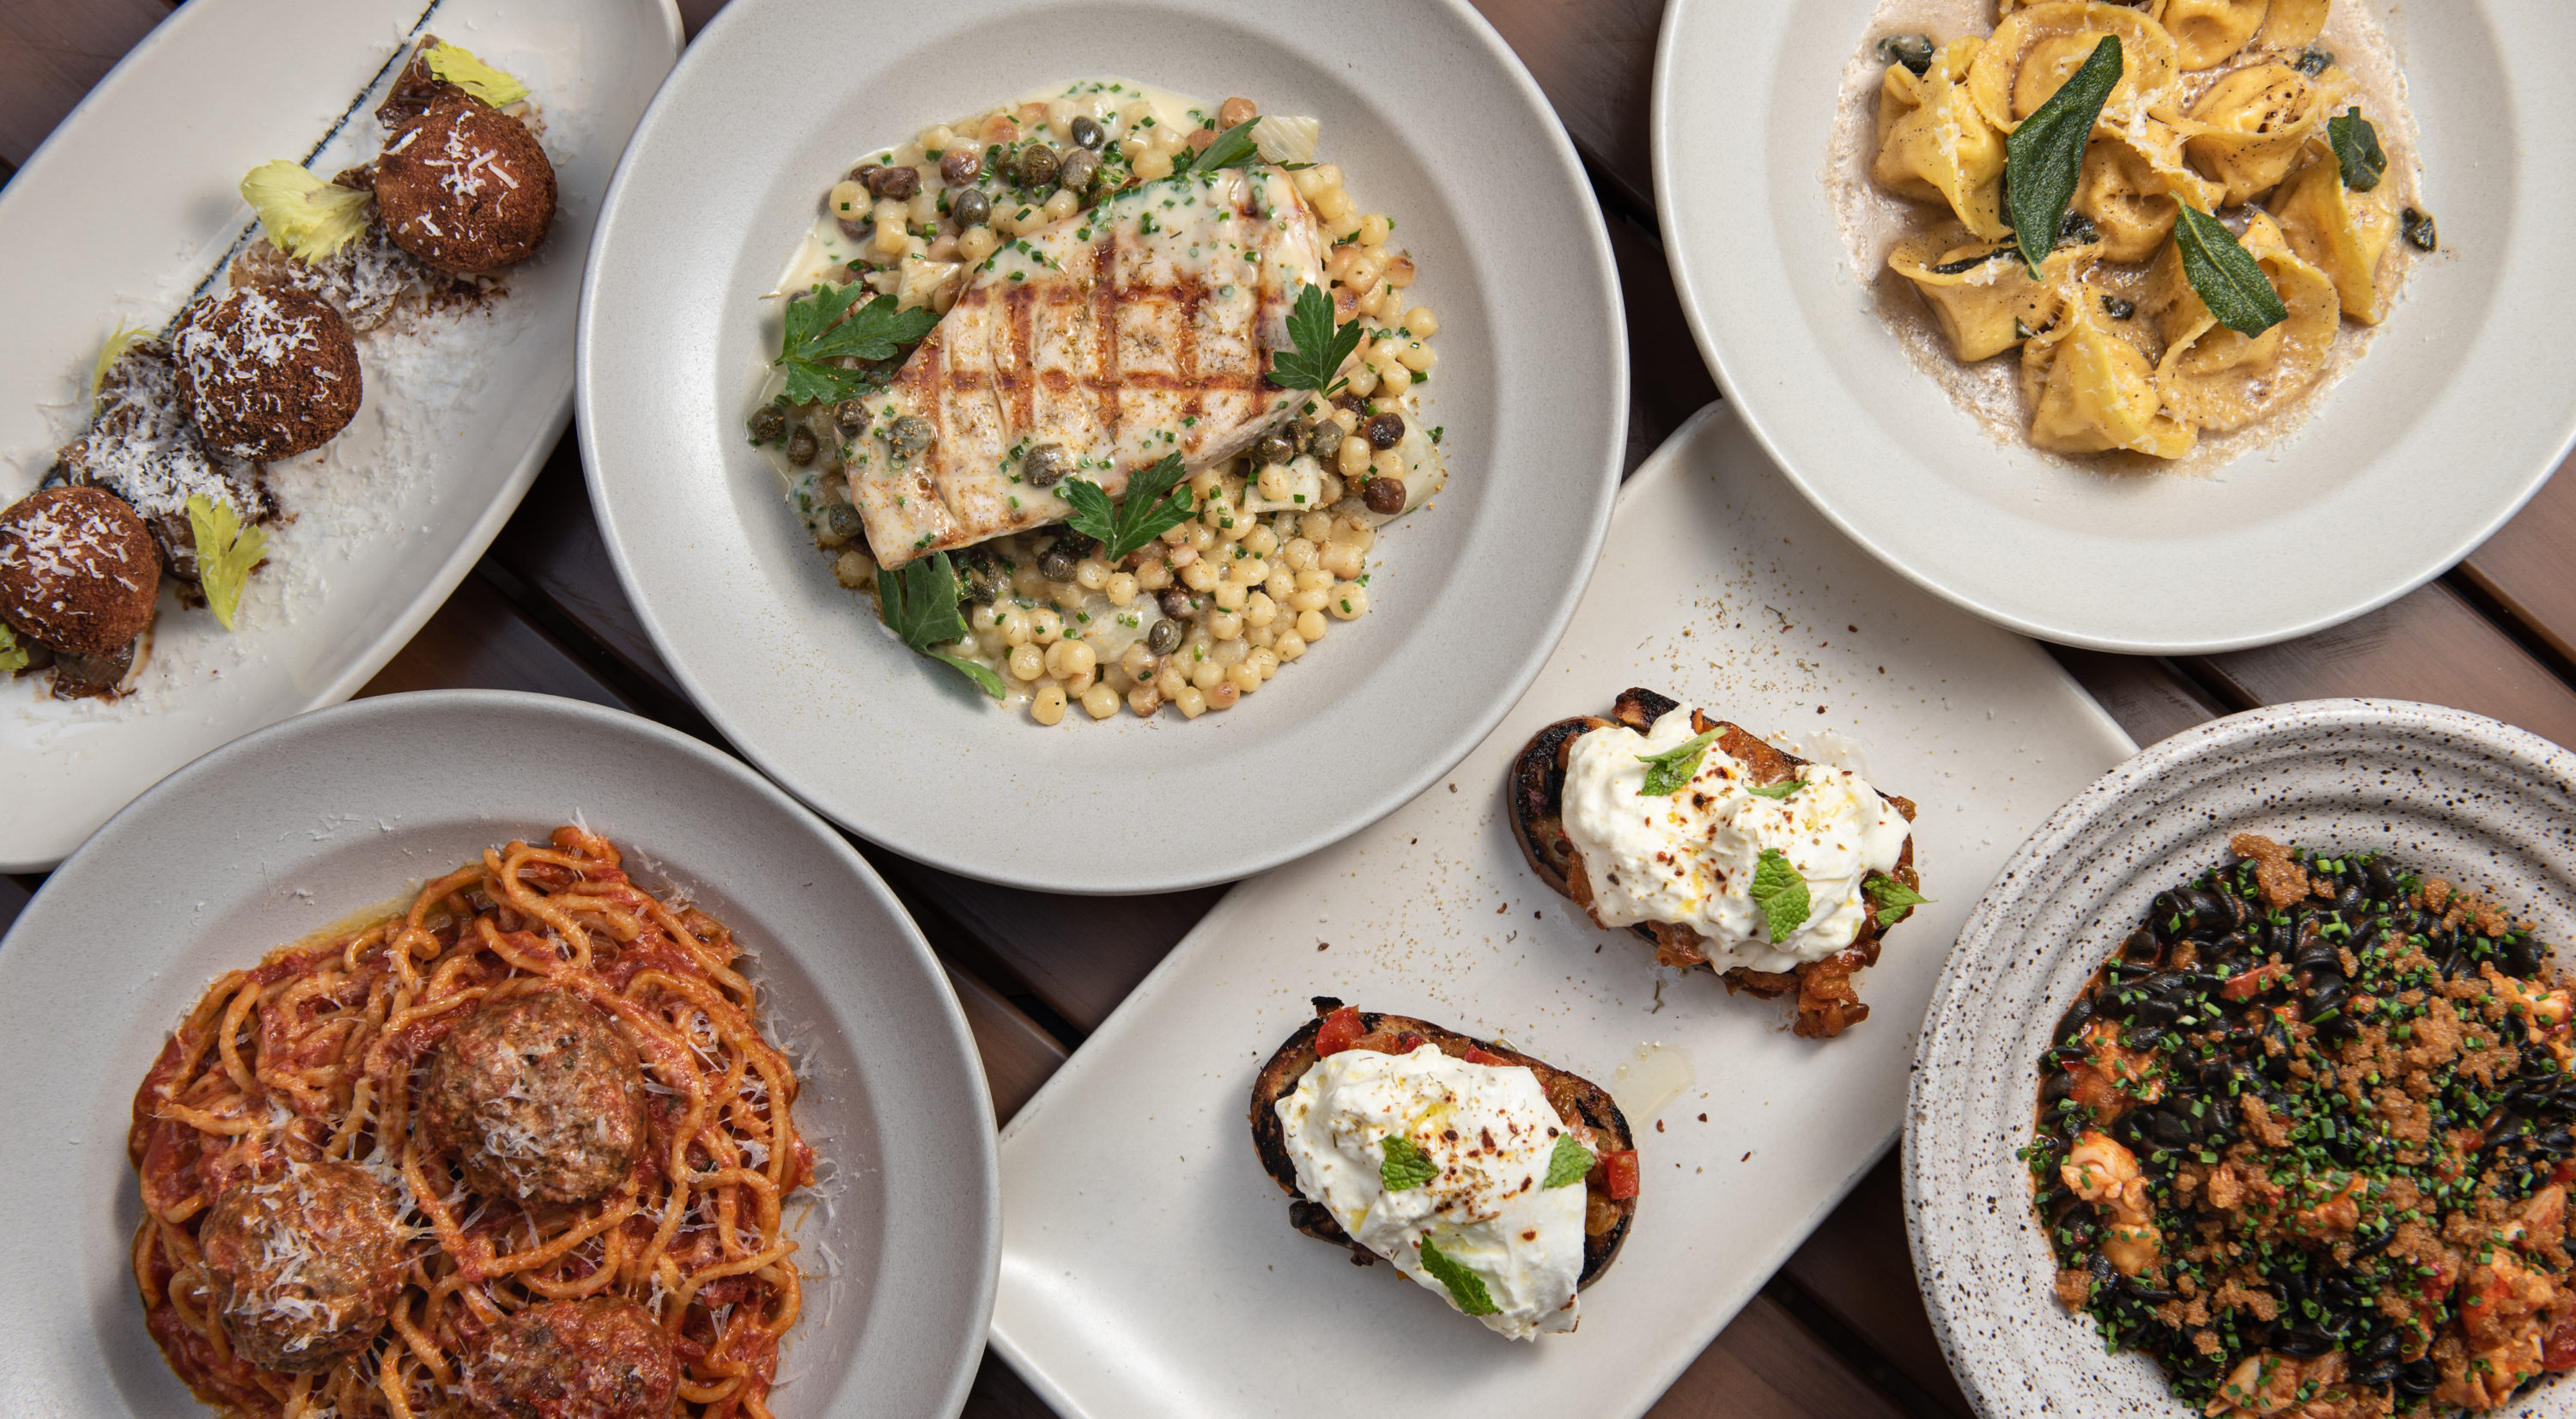 Capalbo's pop-up at Bambara Kitchen & Bar focuses on Italian-American cuisine. (Courtesy Peter Holmgren)